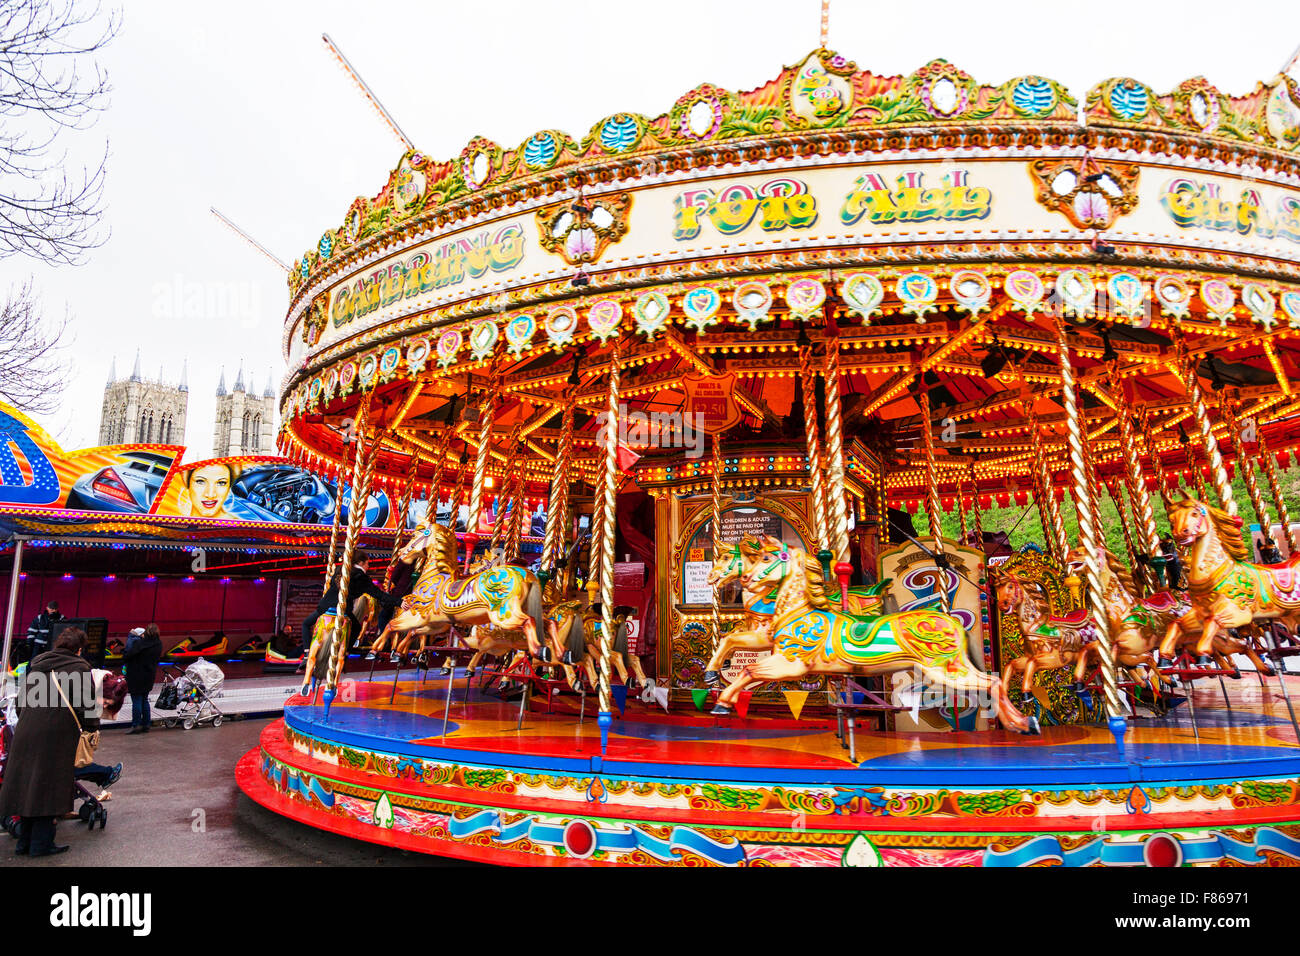 Merry go round fair ride merry-go-round funfair children's rides fun enjoyment Lincoln Christmas Market Lincolnshire Stock Photo